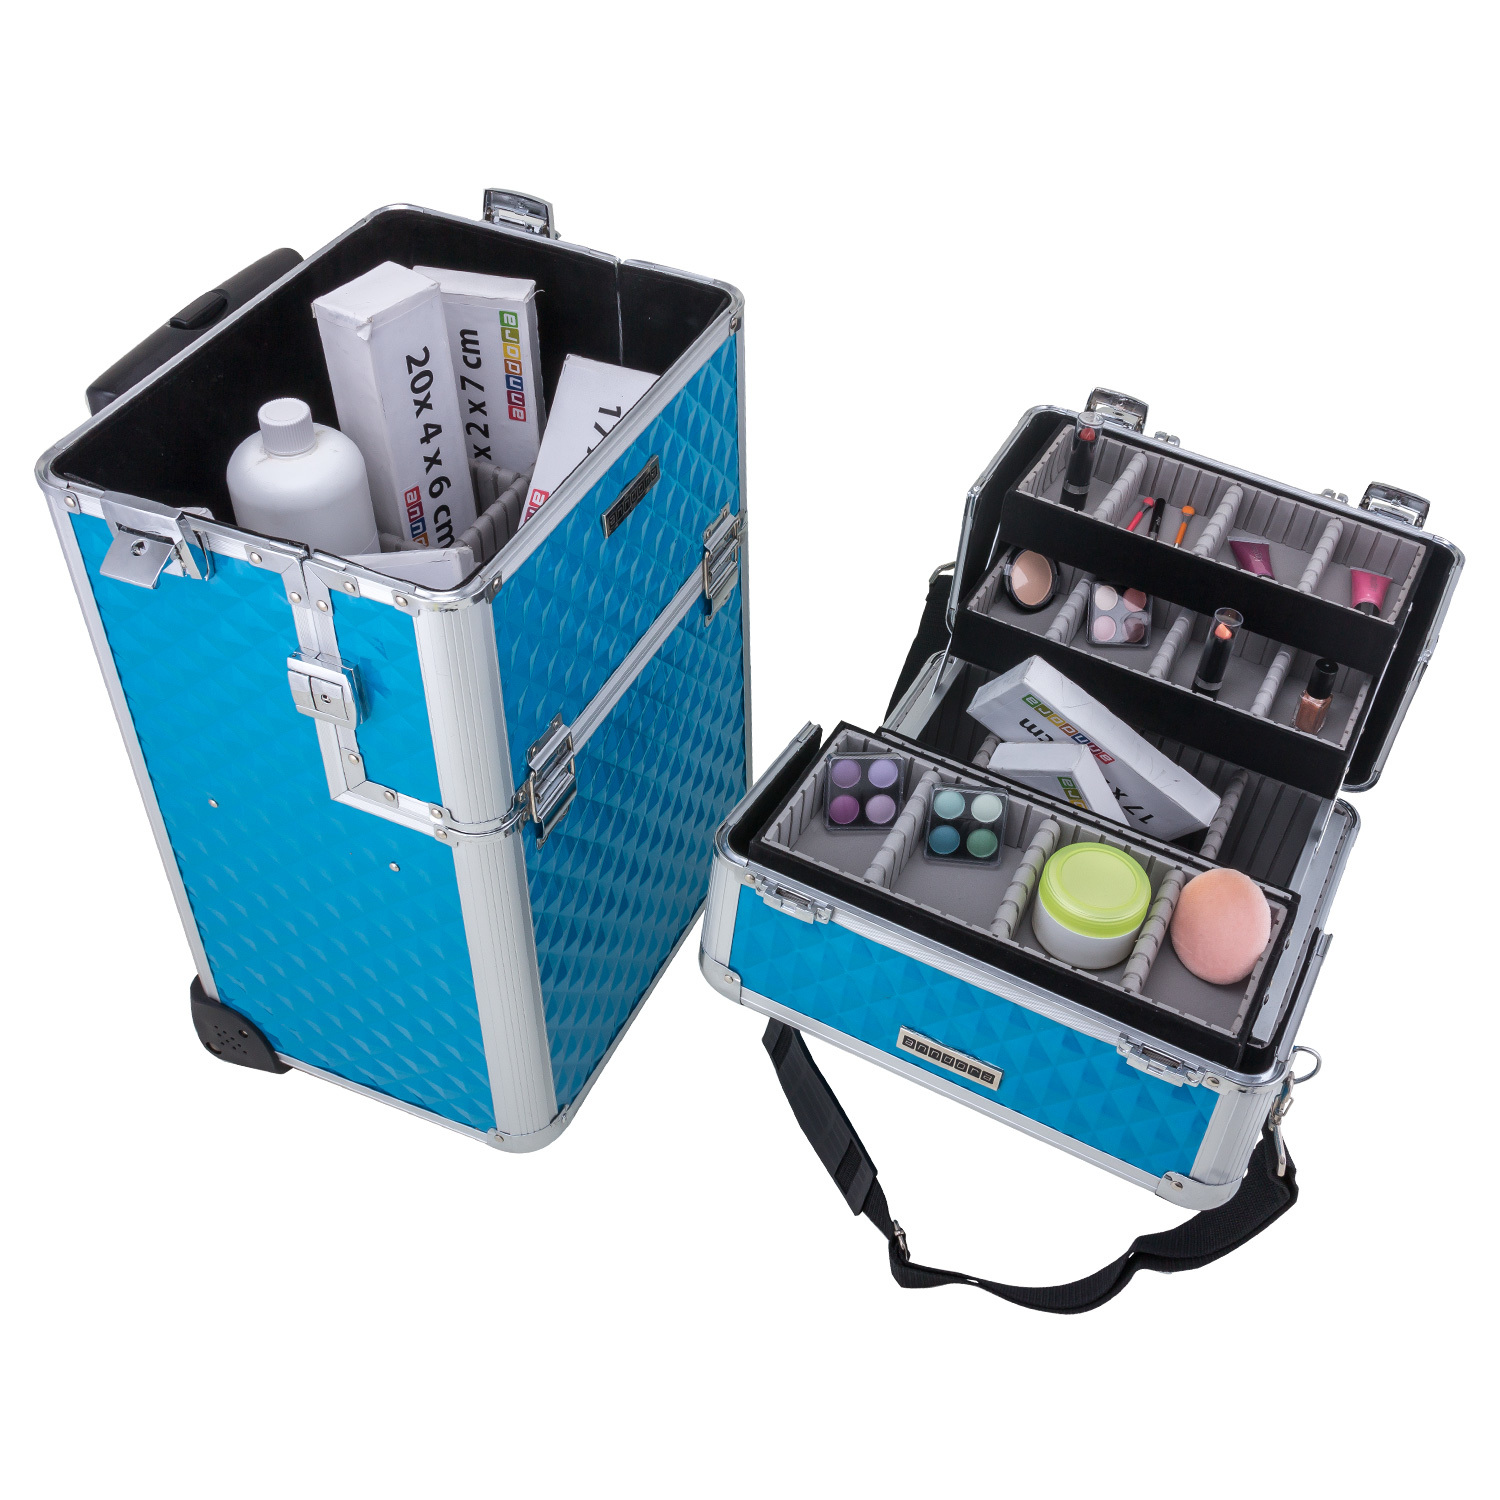 Tool Beauty Case Make-up Koffer Trolley 2 Räder Werkzeugtrolley Friseurkoffer Make-up